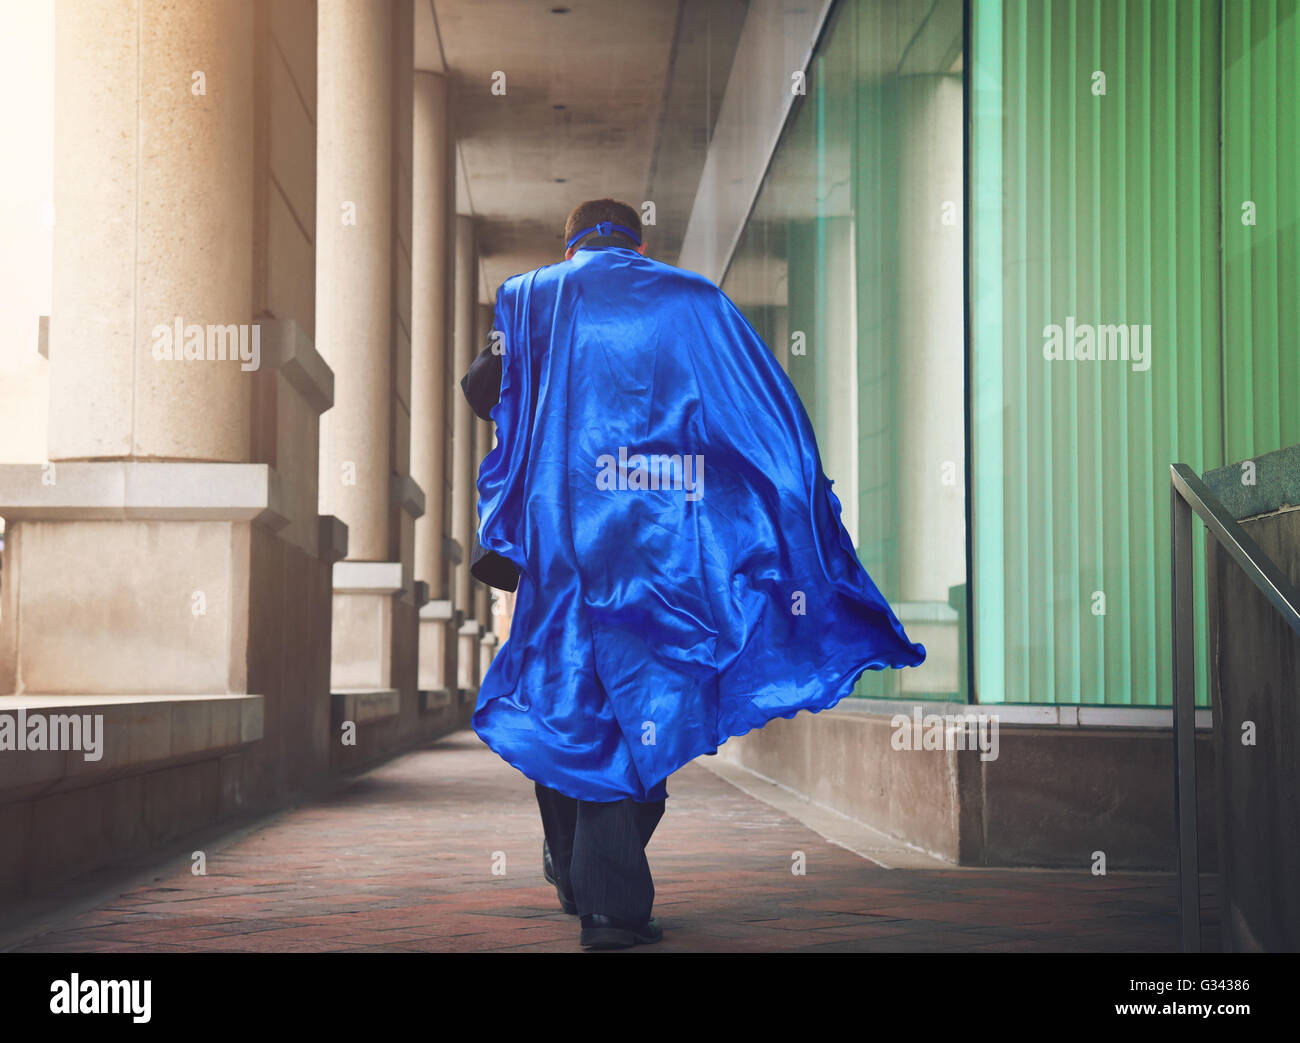 A business man is dressed as a super hero with a blue cape running in the city for a urgent job or leadership concept. Stock Photo